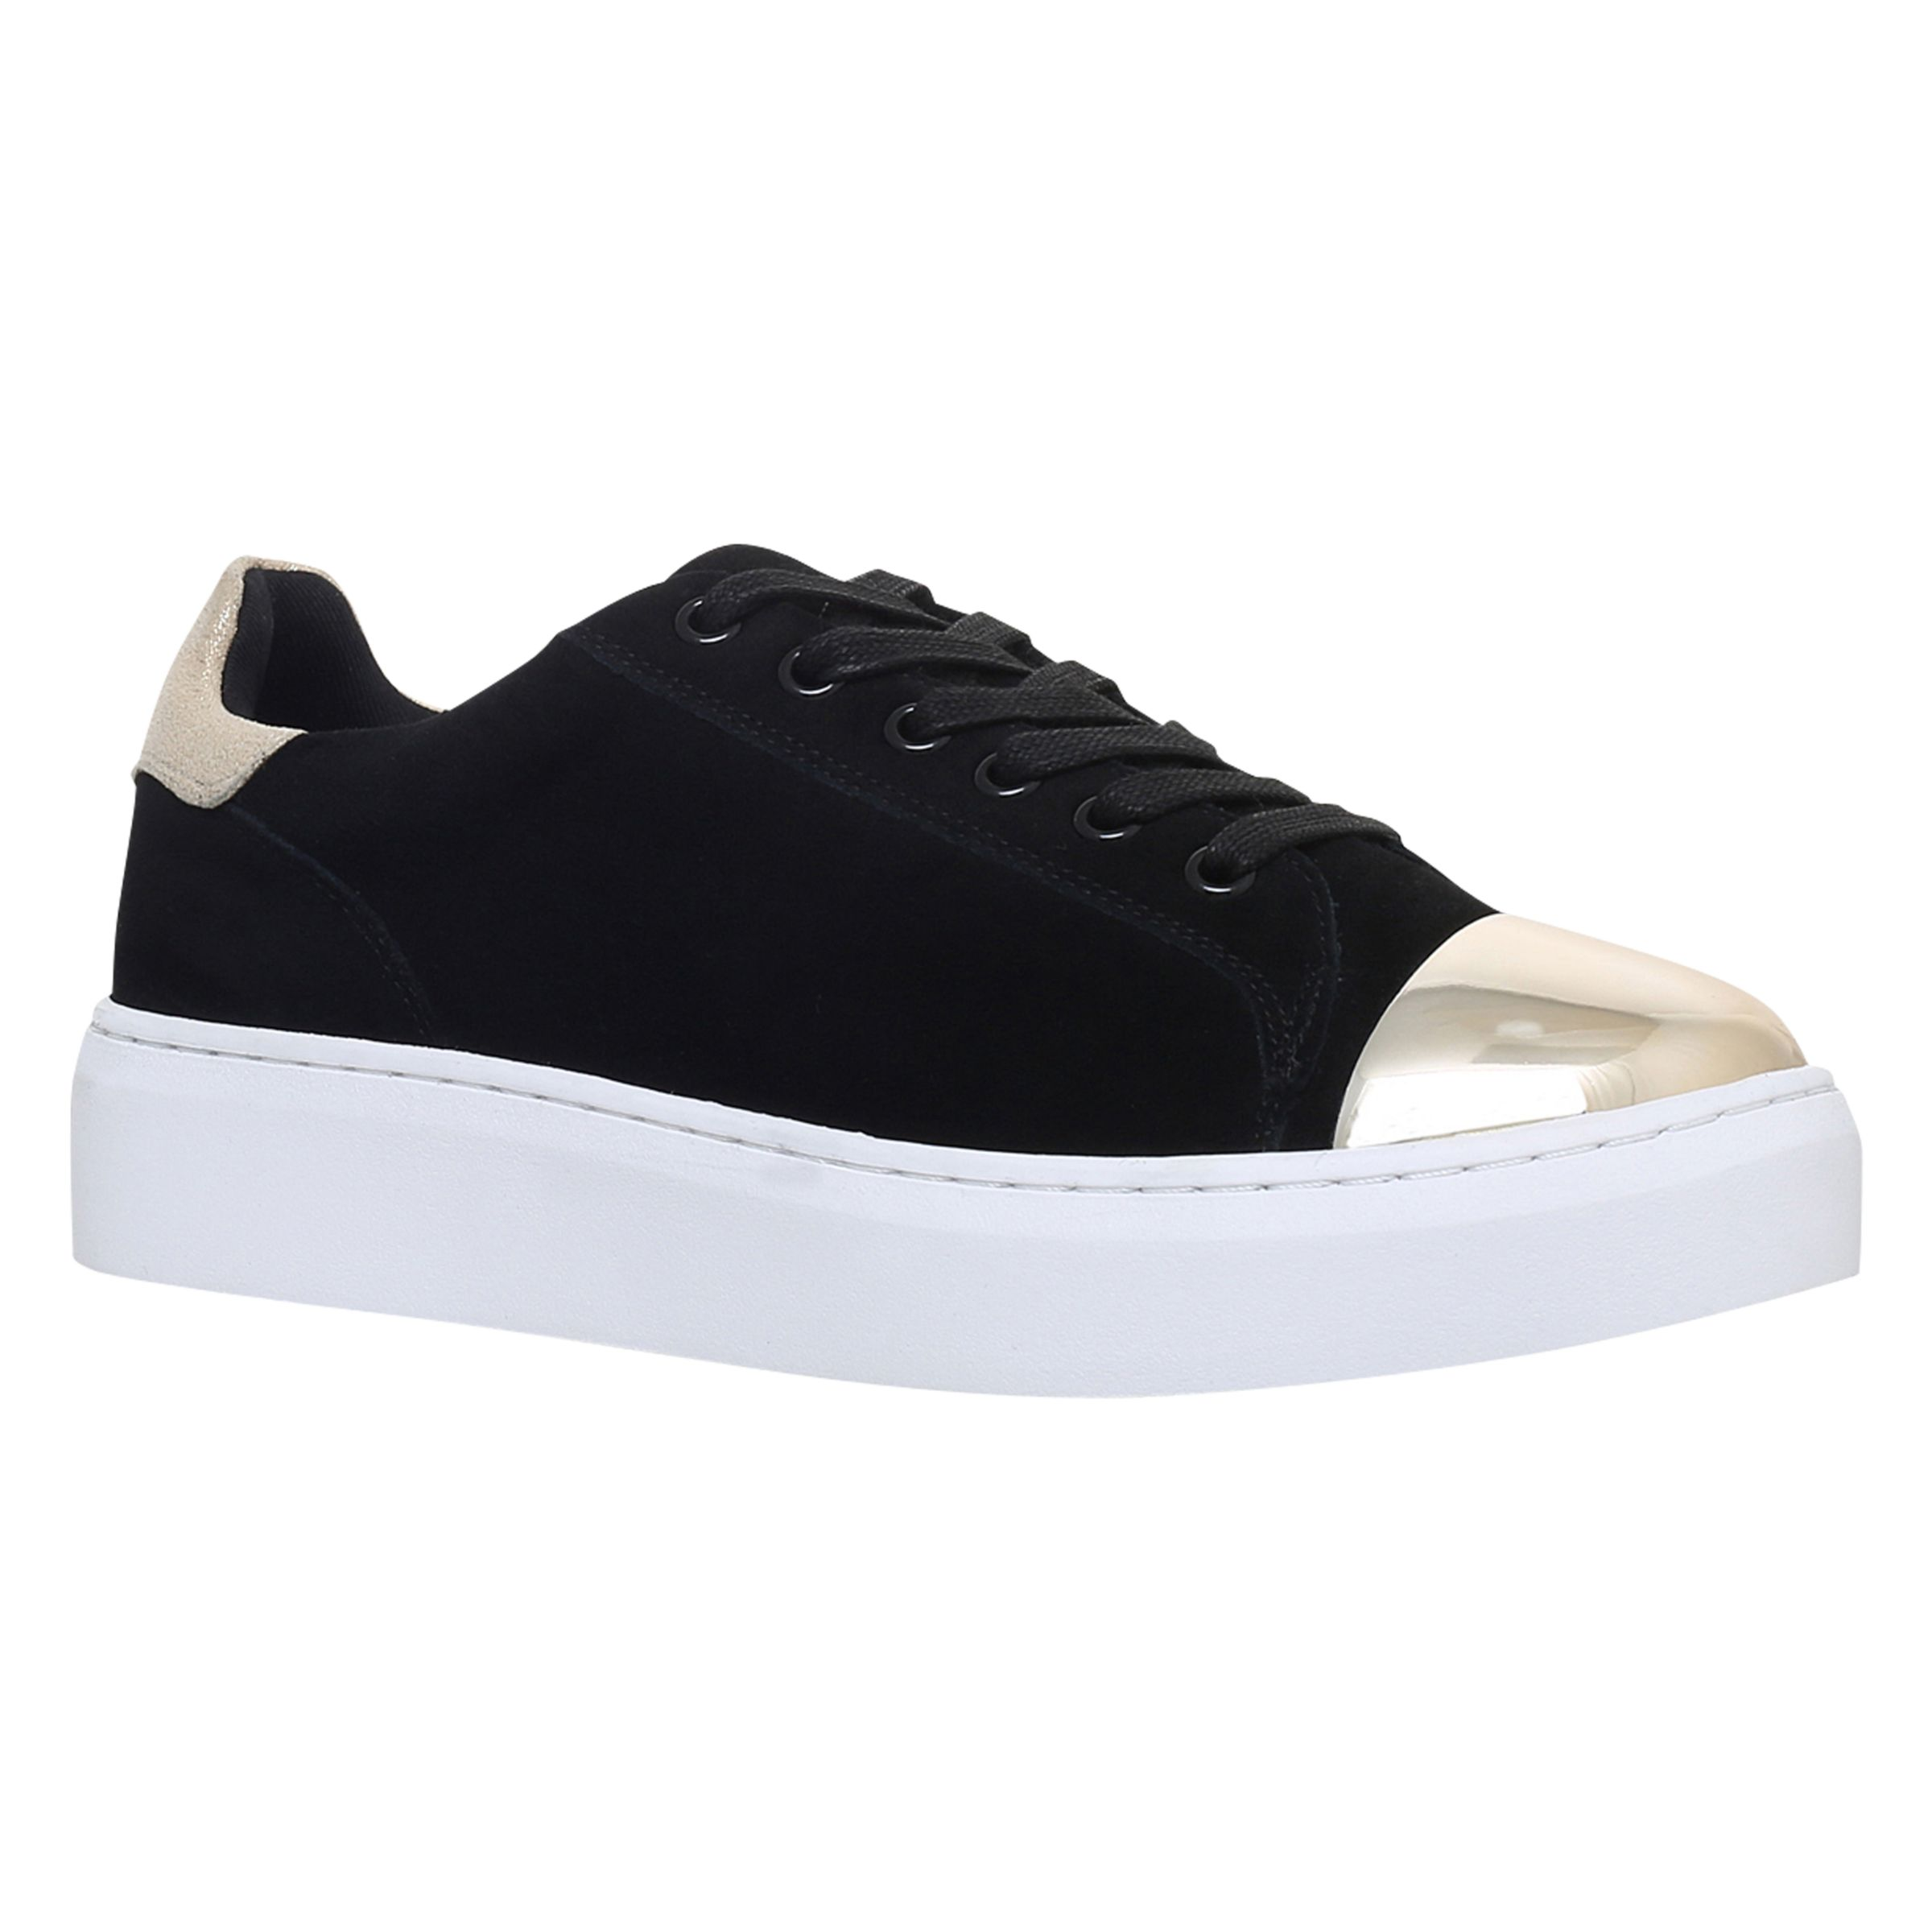 KG by Kurt Geiger KG by Kurt Geiger Loopy Lace Up Trainers